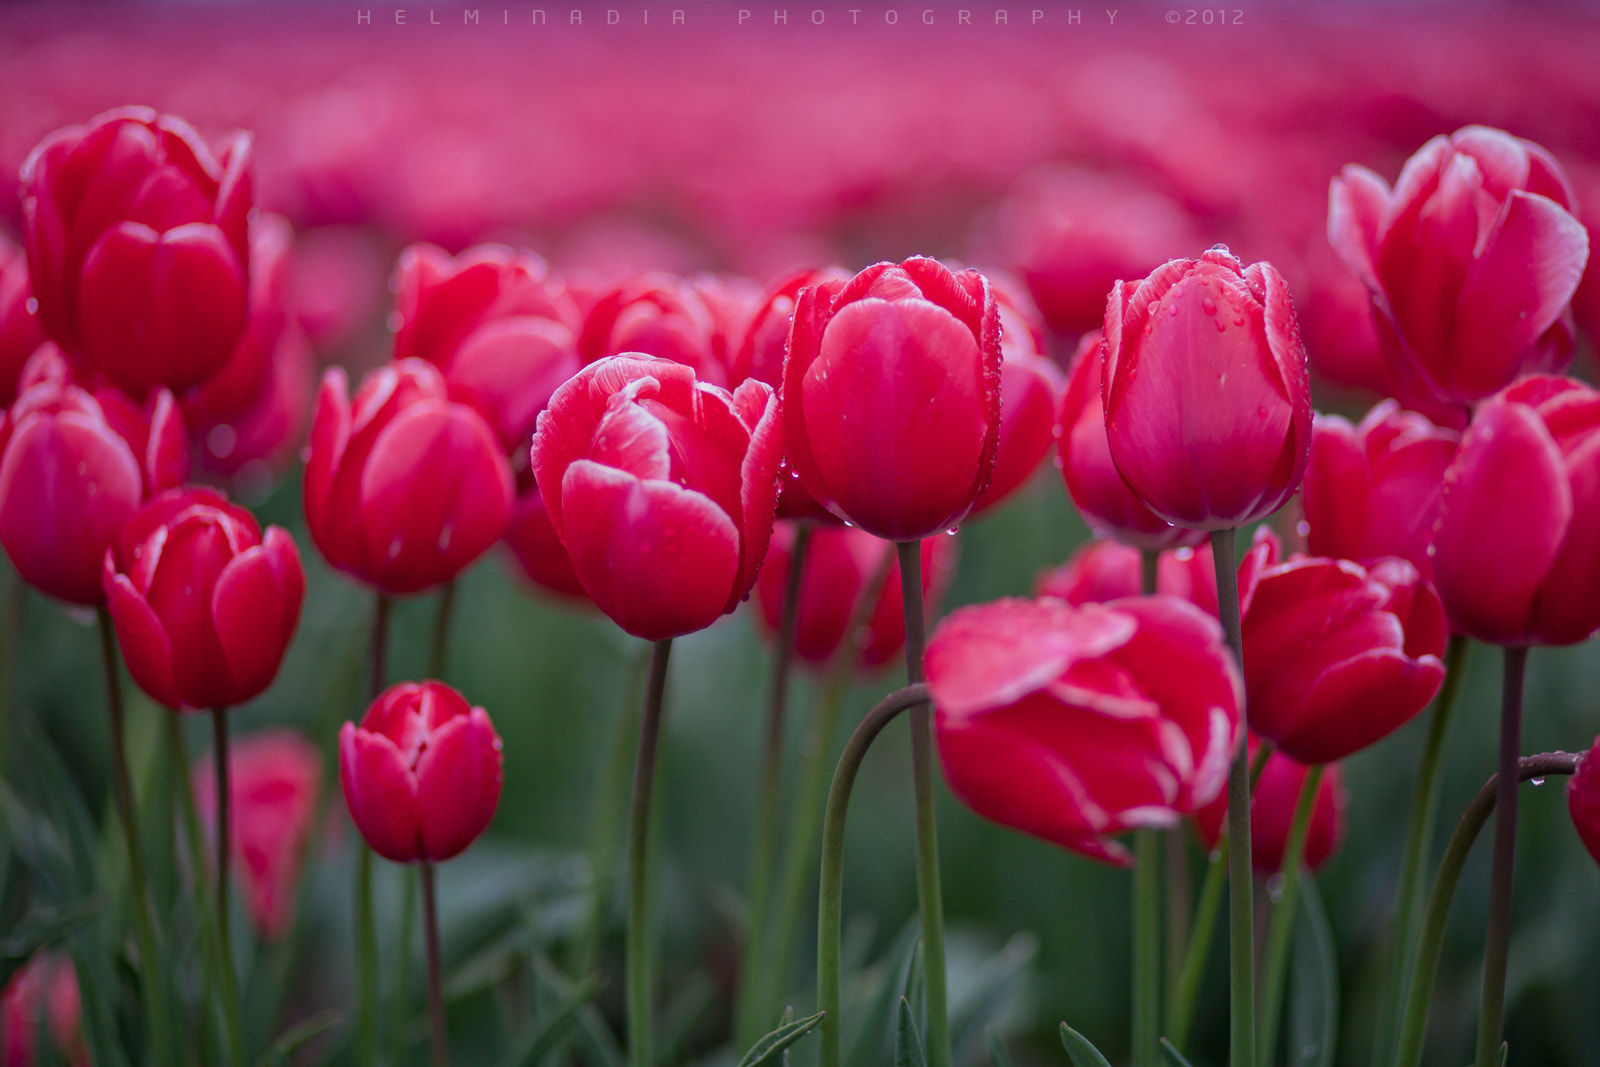 Photograph Tulip festival by Helminadia Ranford on 500px